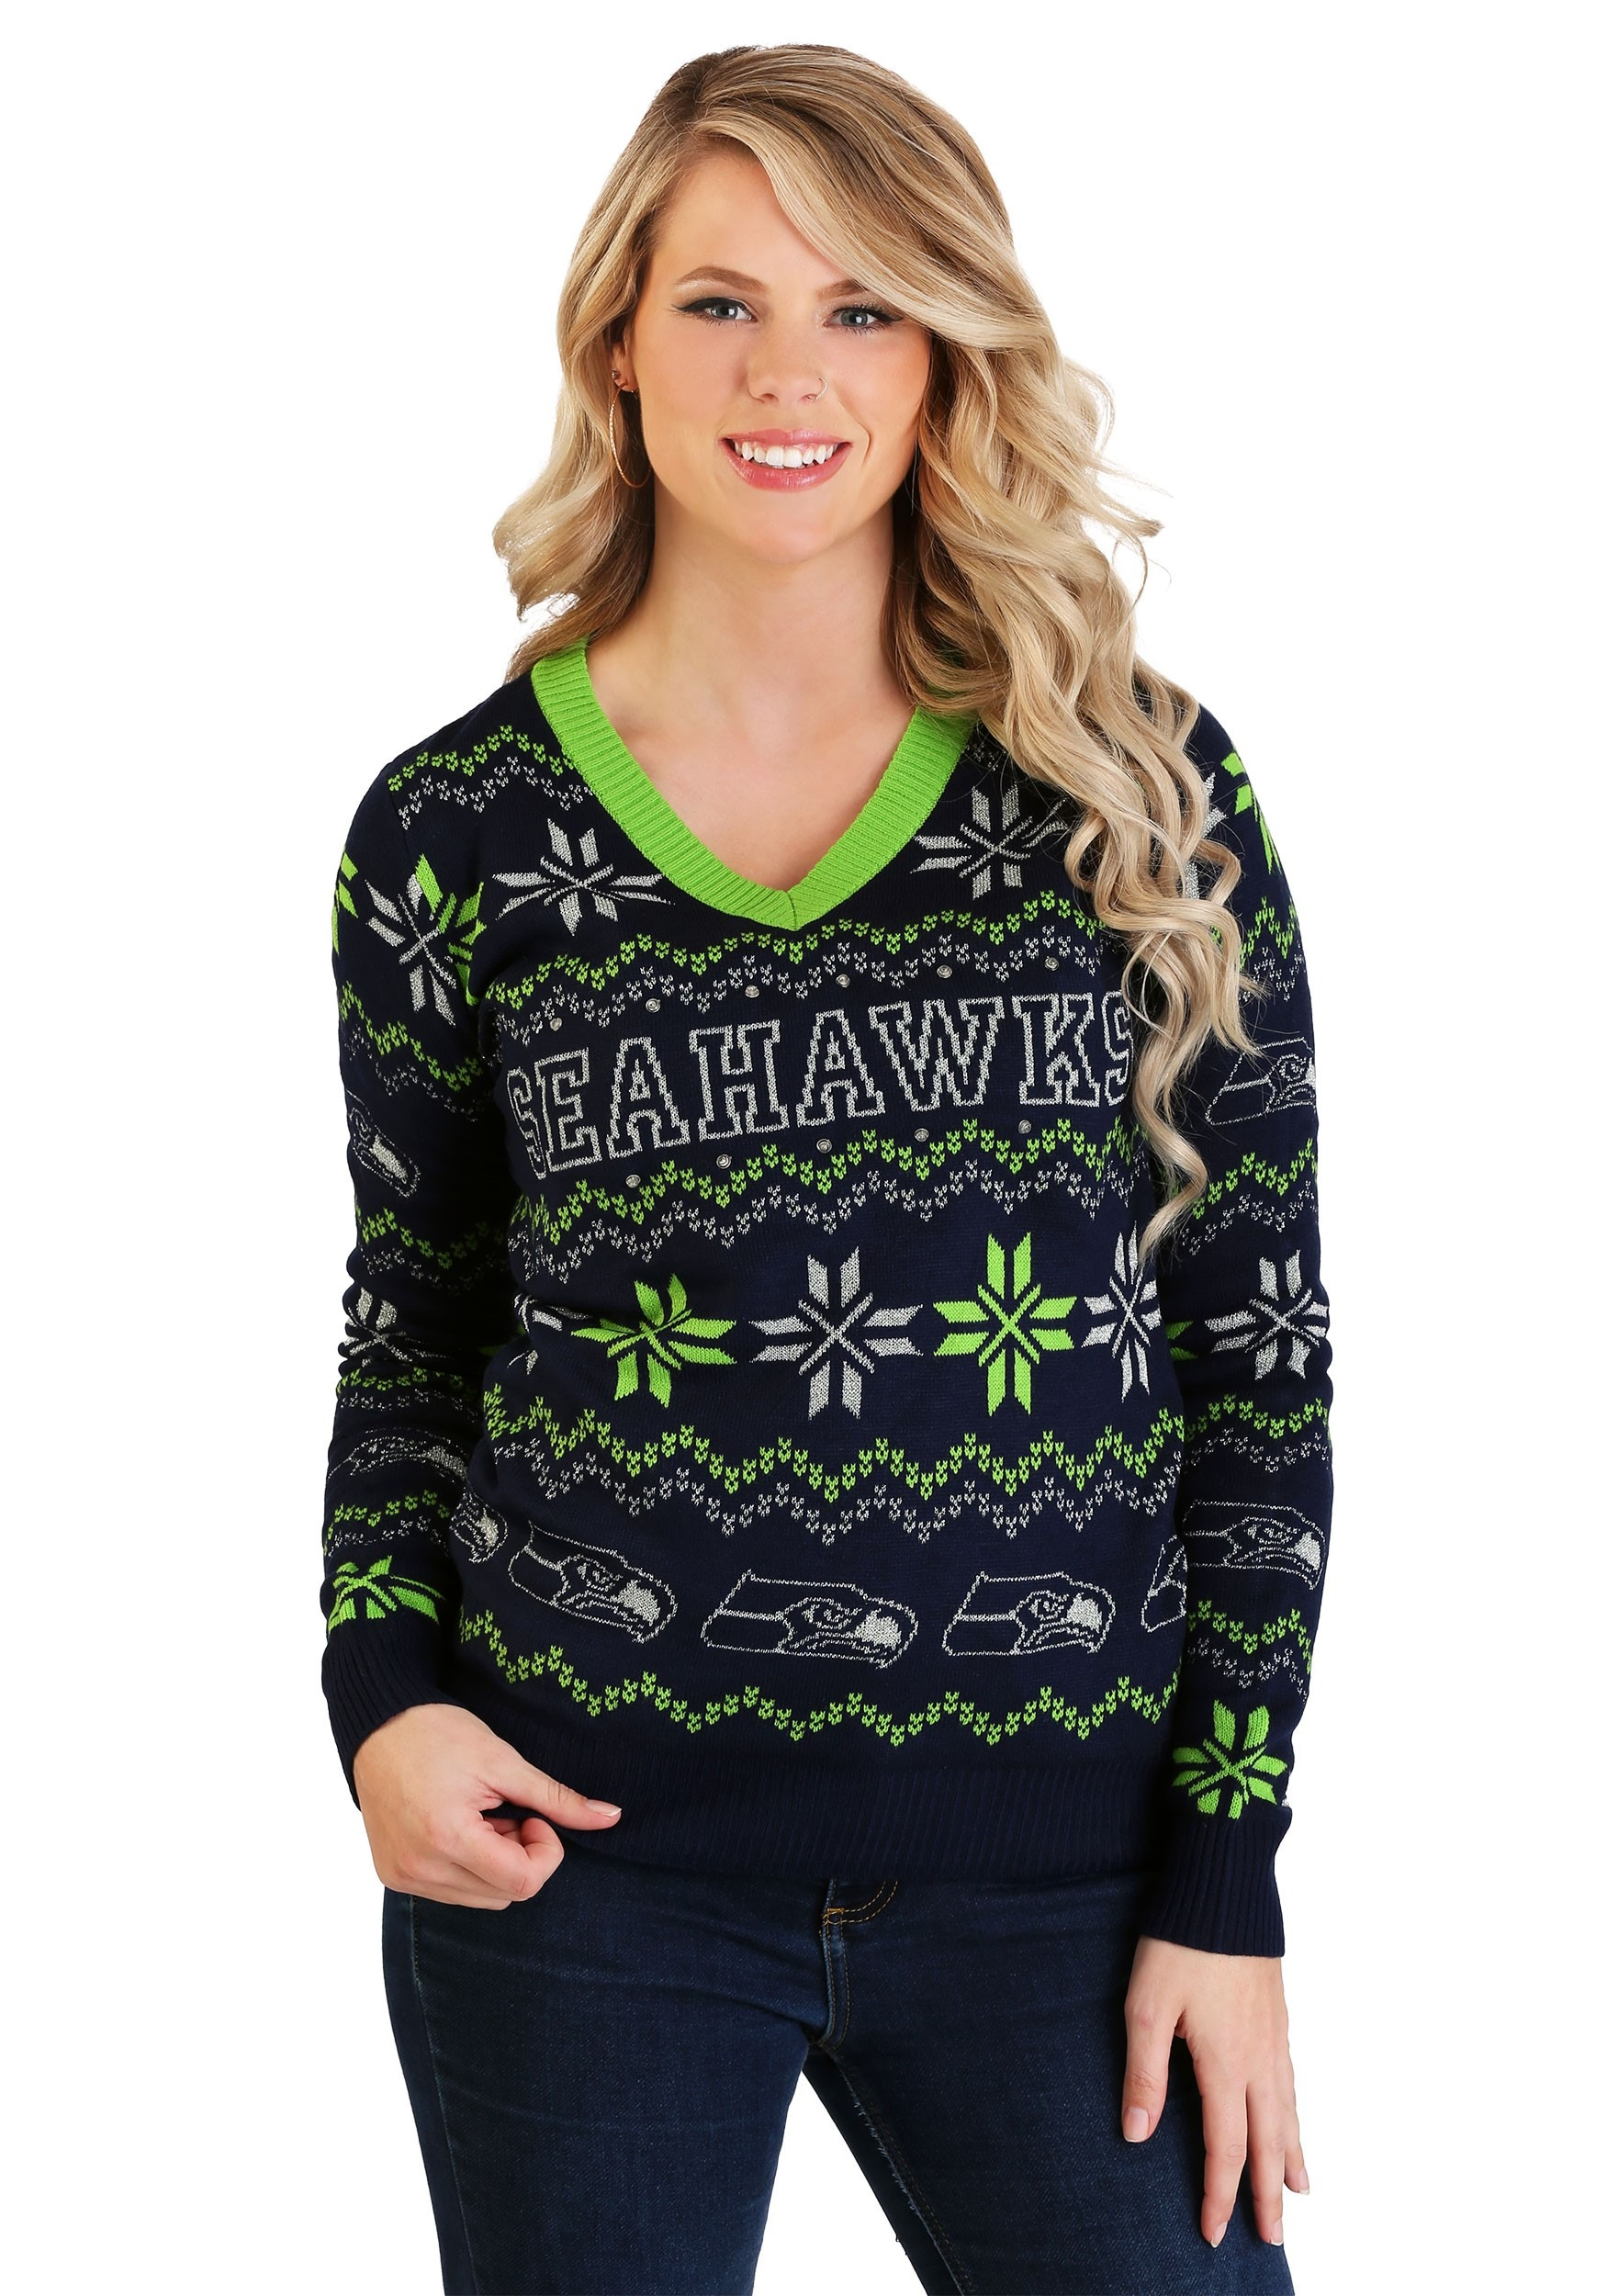 Seattle Seahawks Light Up V-Neck Bluetooth Sweater for Women